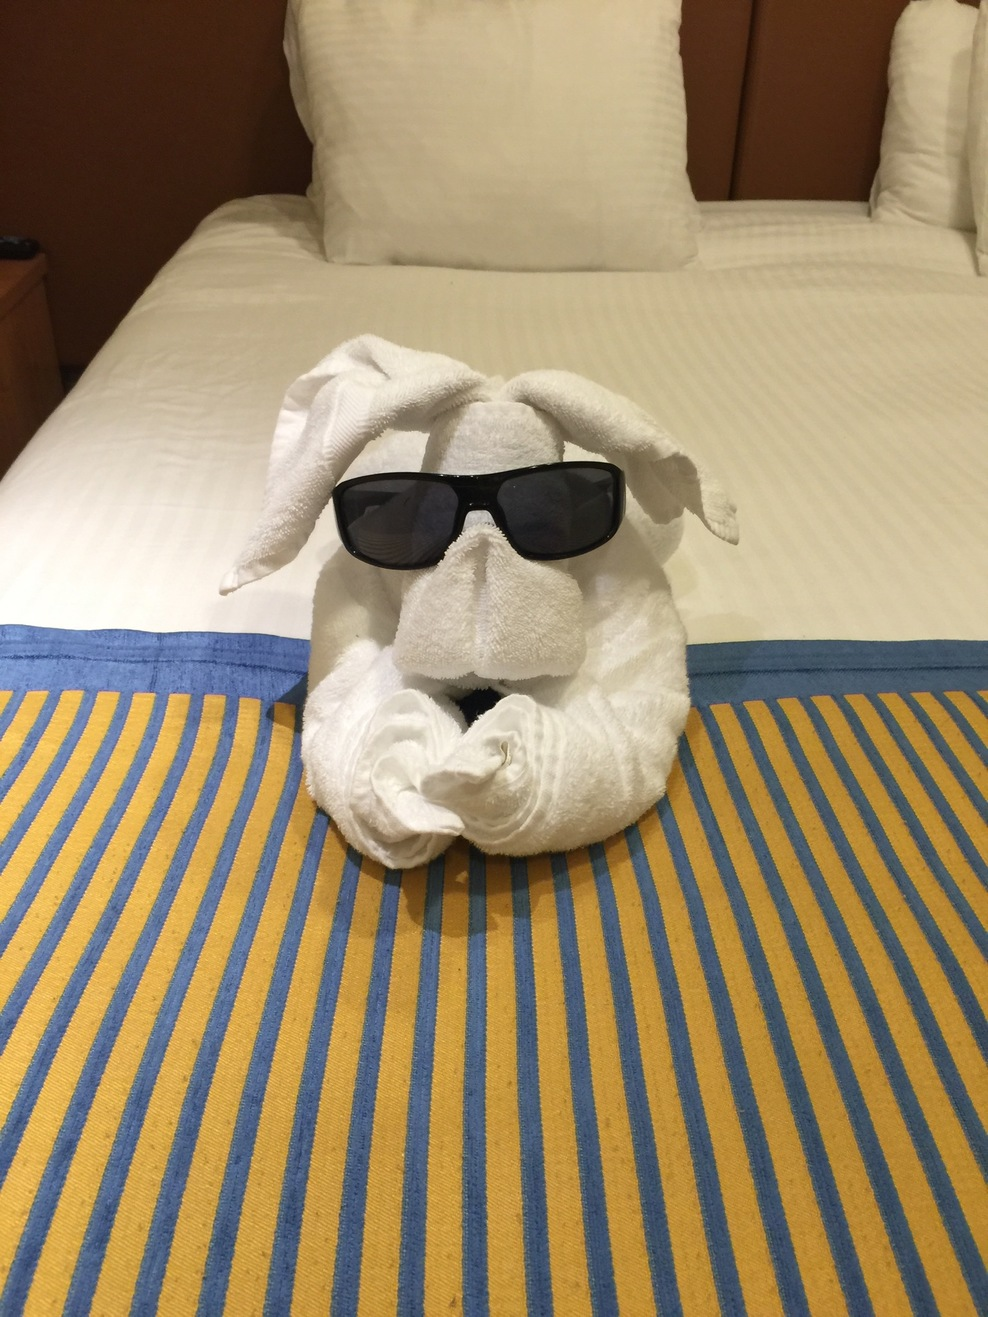 Nightly towel animal just for a laugh.